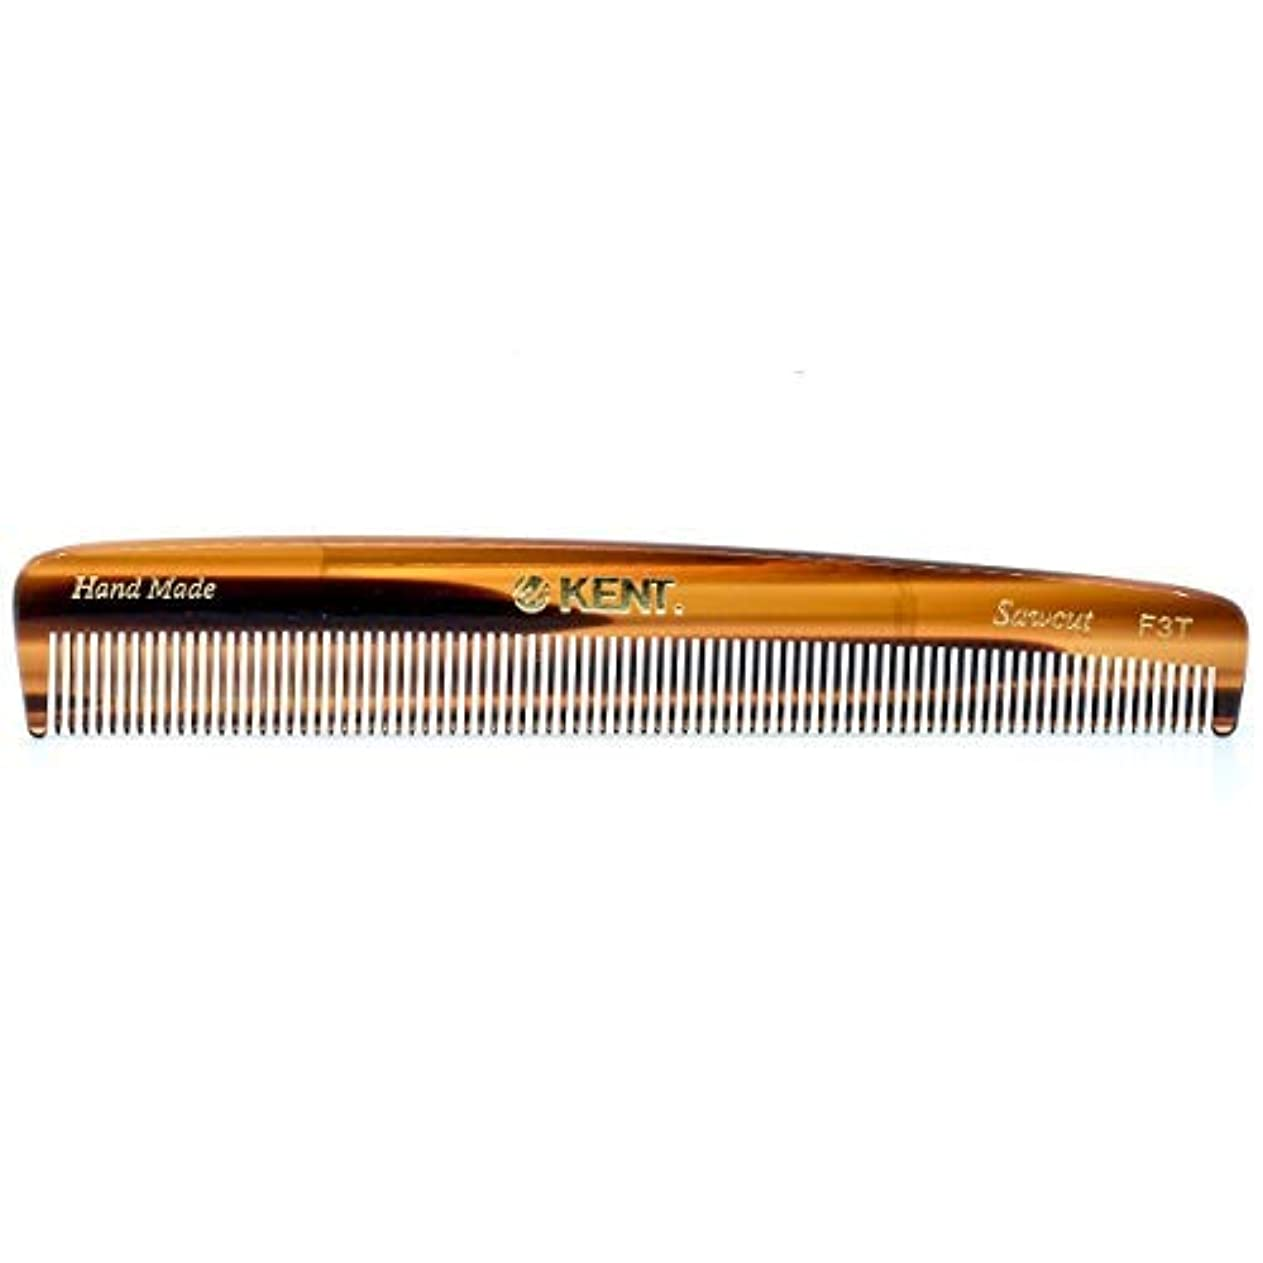 Kent F3T The Hand Made - All Fine Dressing Comb 160mm/6.25 Inch [並行輸入品]